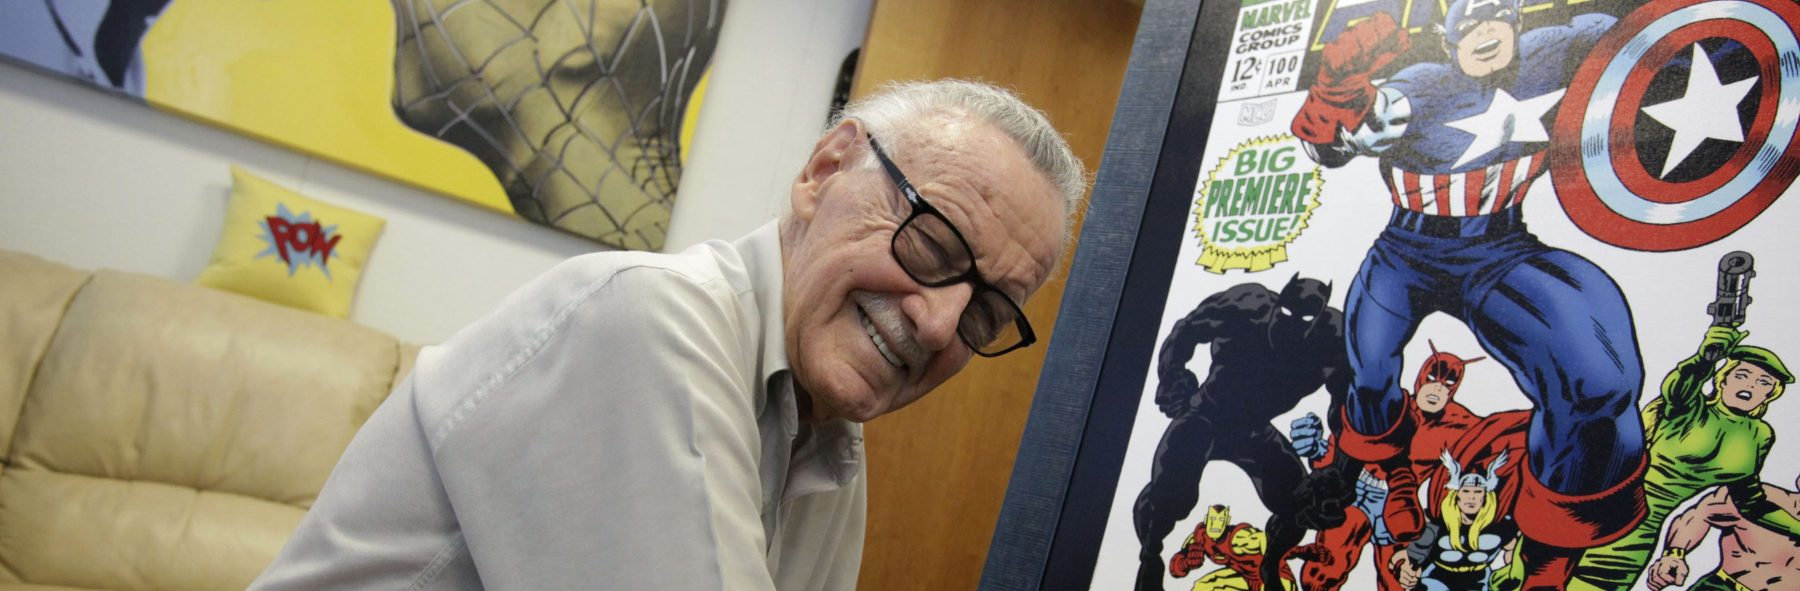 Stan Lee pictured signing poster for an exhibit in his Beverly Hills office in 2009.  (Photo by Barbara Davidson/Los Angeles Times via Getty Images)